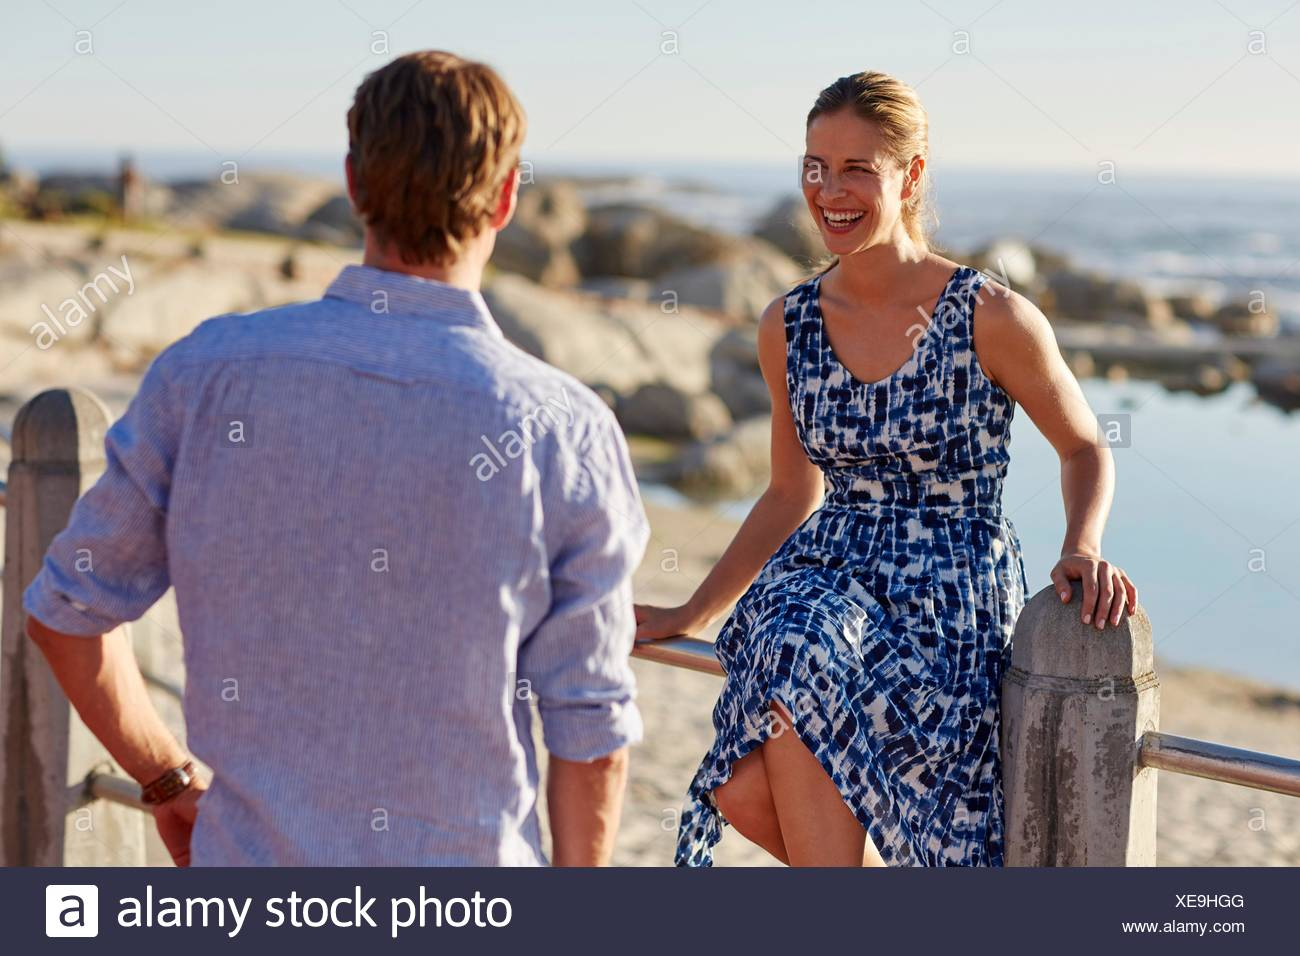 MODEL RELEASED. Woman sitting on railings by beach laughing, man watching. - Stock Image